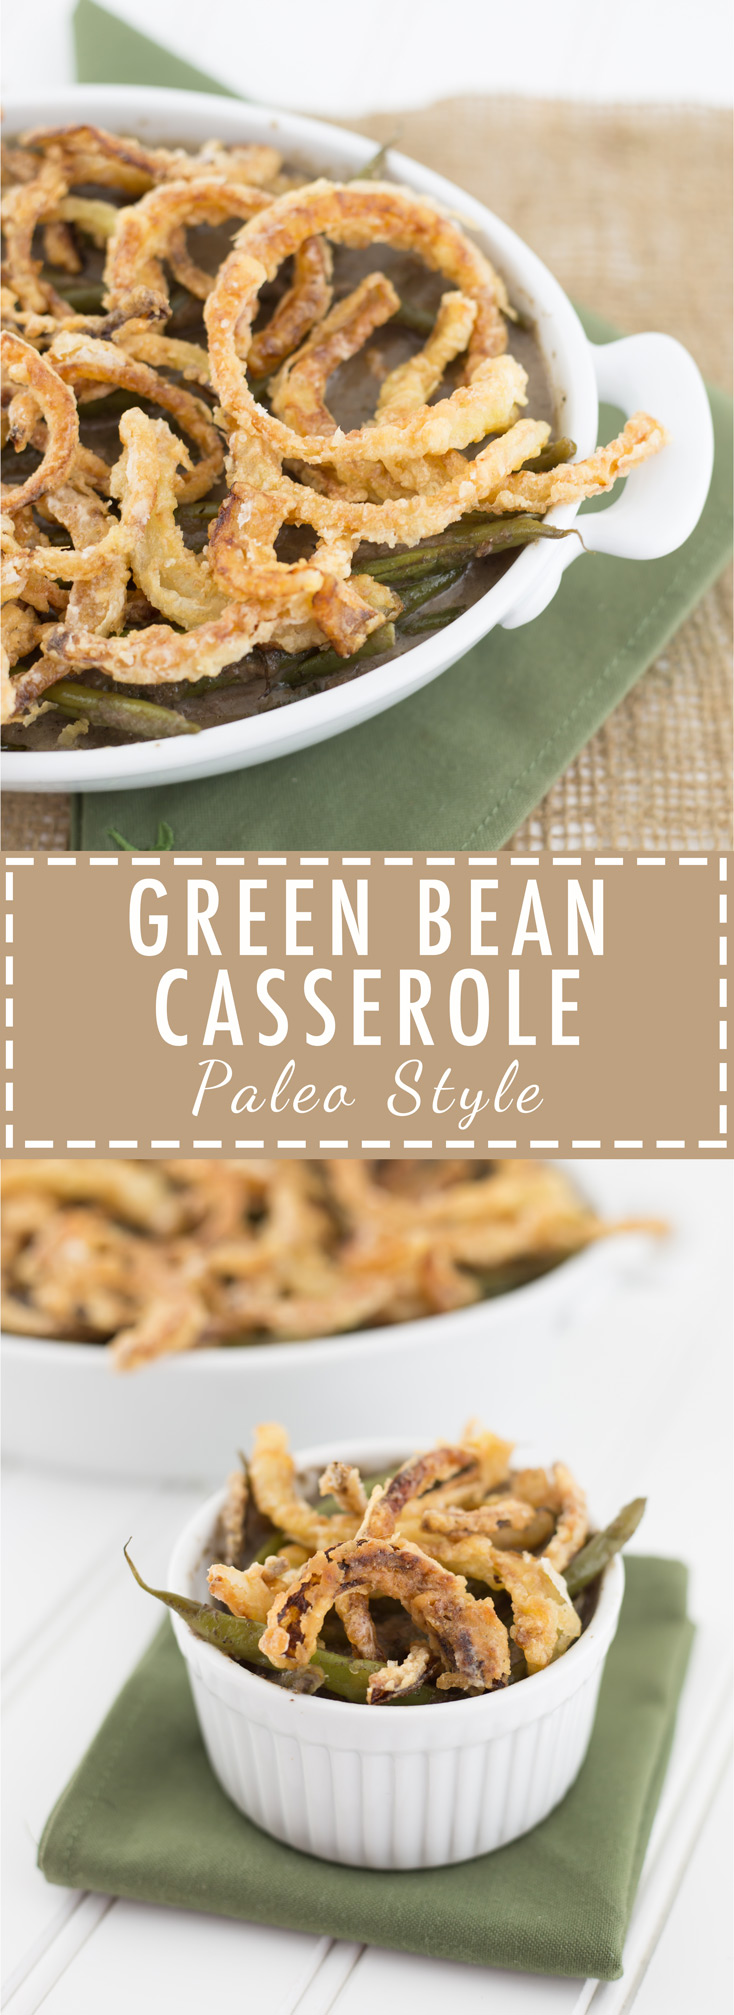 paleo green bean casserole, paleo thanksgiving, green beans, healthy recipes, healthy food,